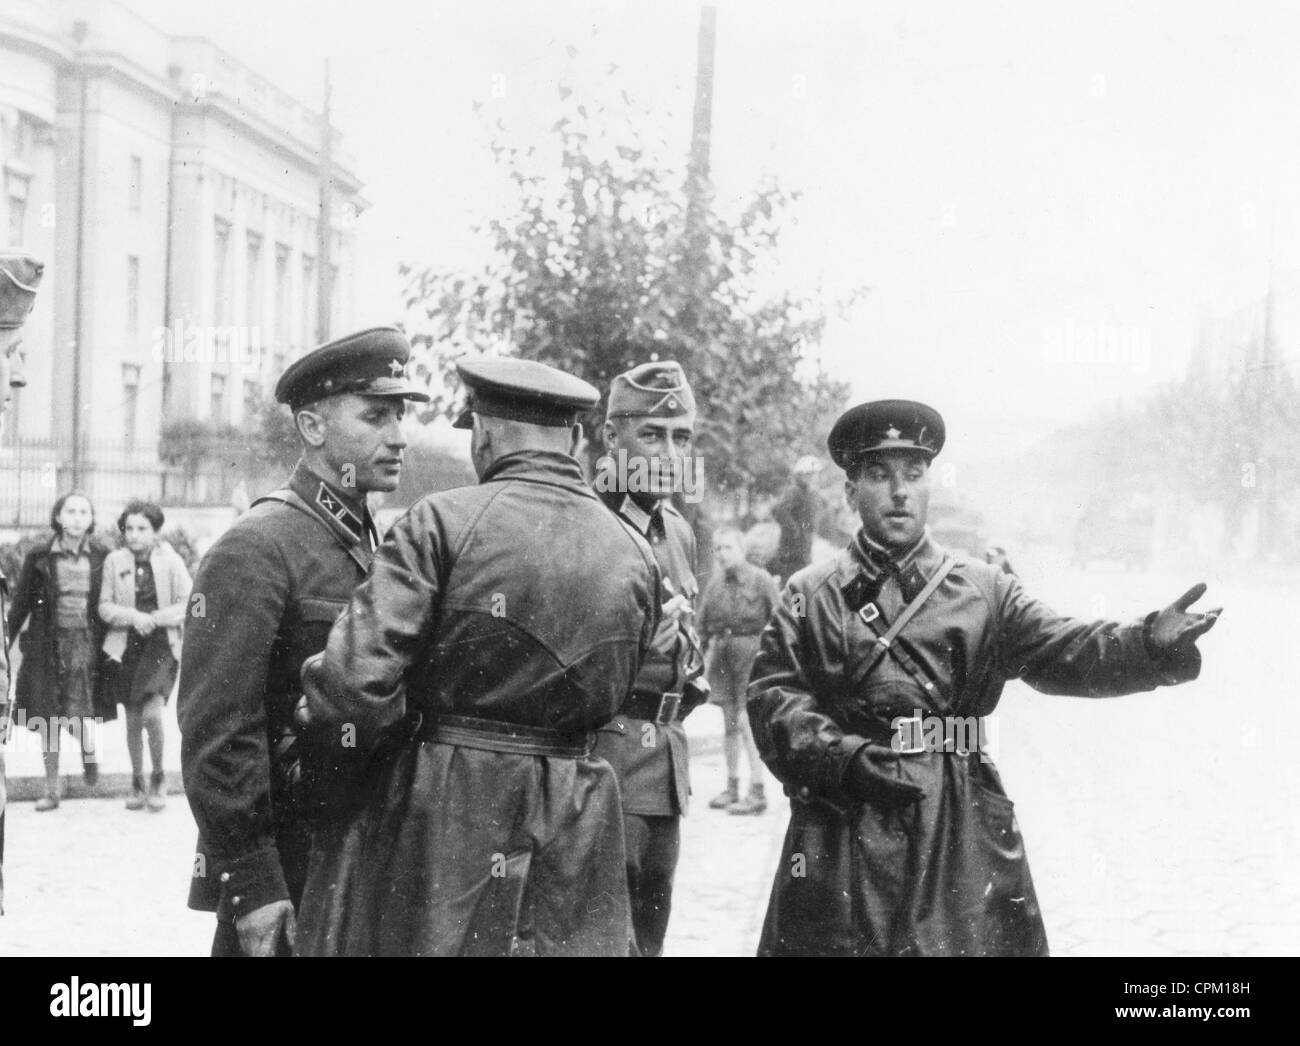 Soviet and German officers in Brest-Litovsk, 1939 - Stock Image